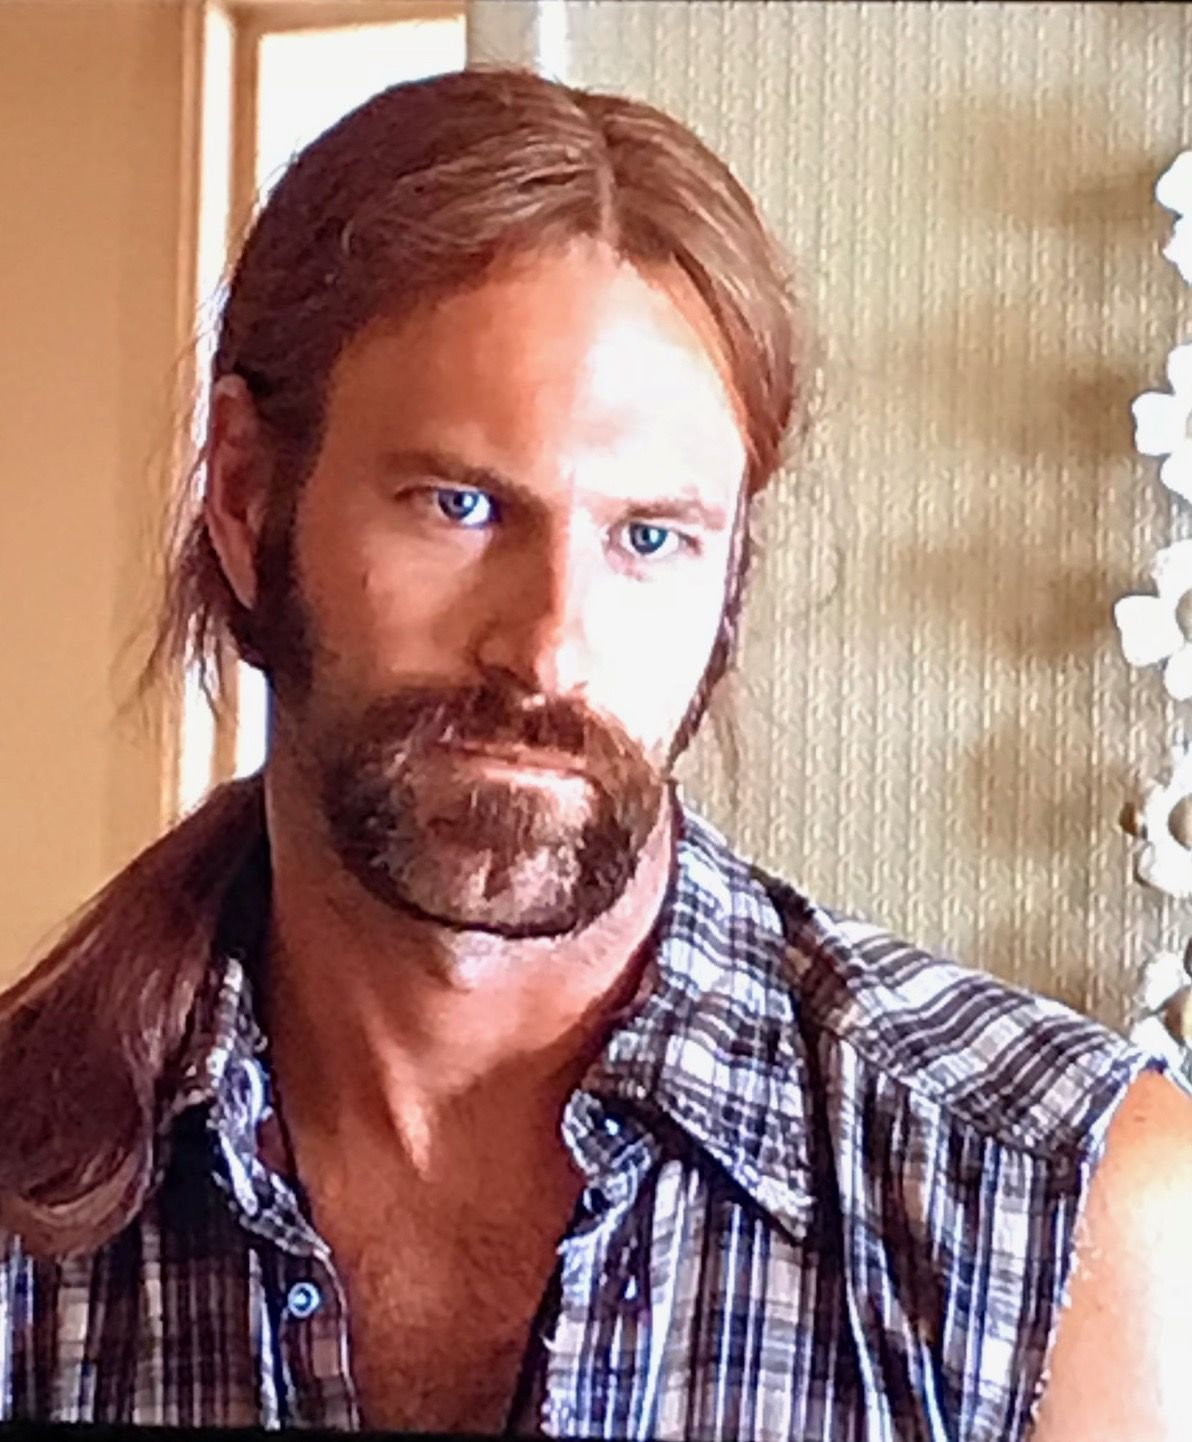 Aaron Eckhart Look So Hot With Long Hair And A Goatee